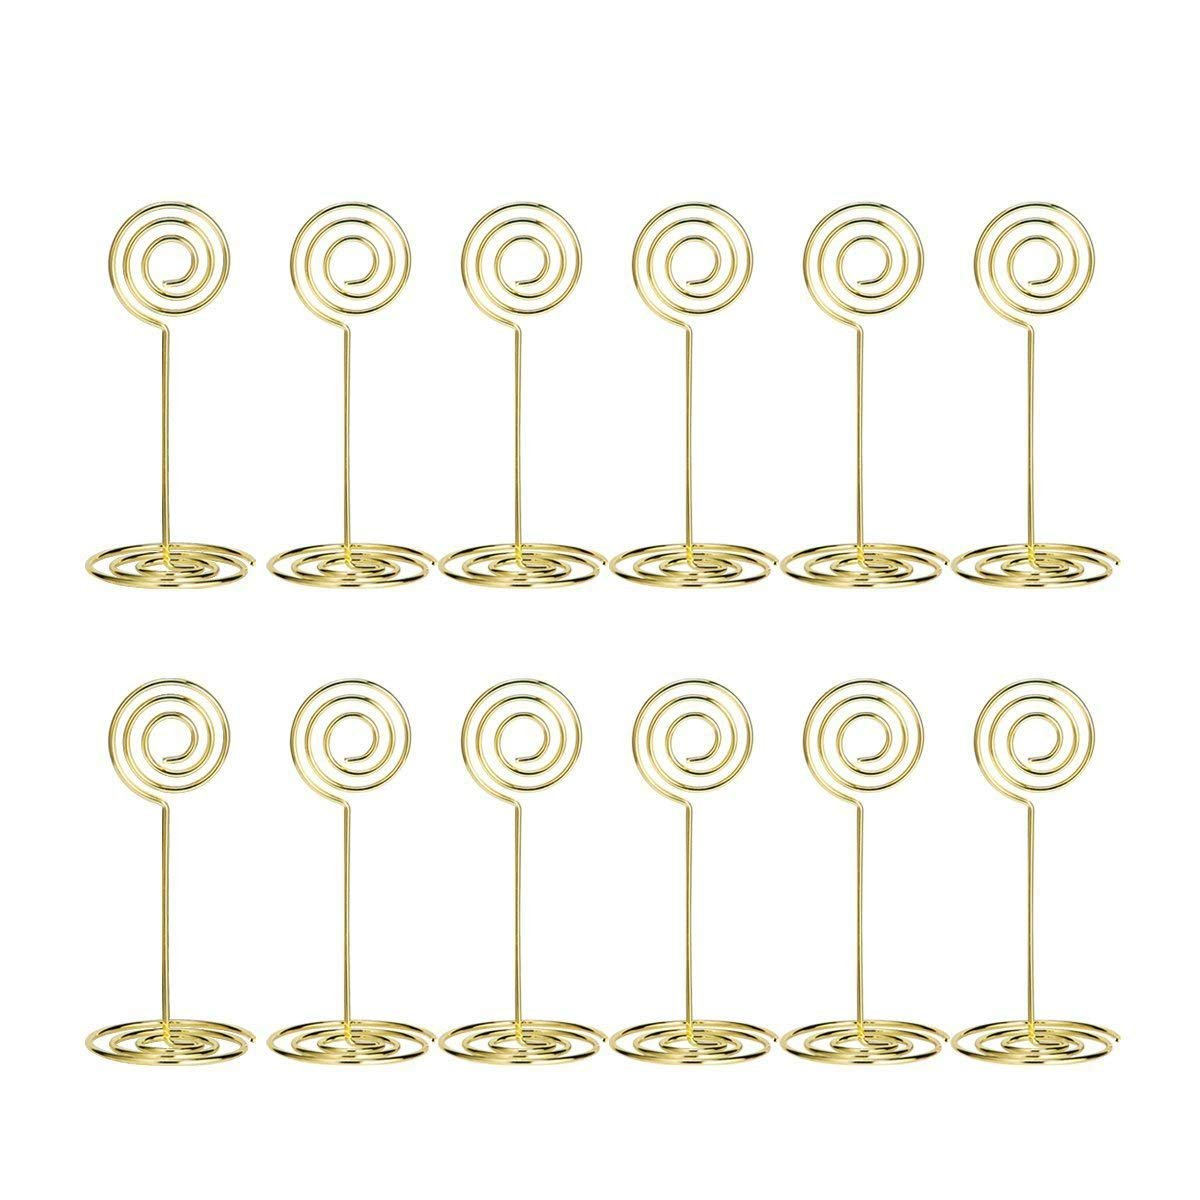 Aieve Table Card Holders - 24 Pack Wire Shape Table Photo Holder Table Number Holder Wire Photo Holders Table Pictures Stand for Place Cards Wedding Party Office Desk Memo Menu Clips (Gold)